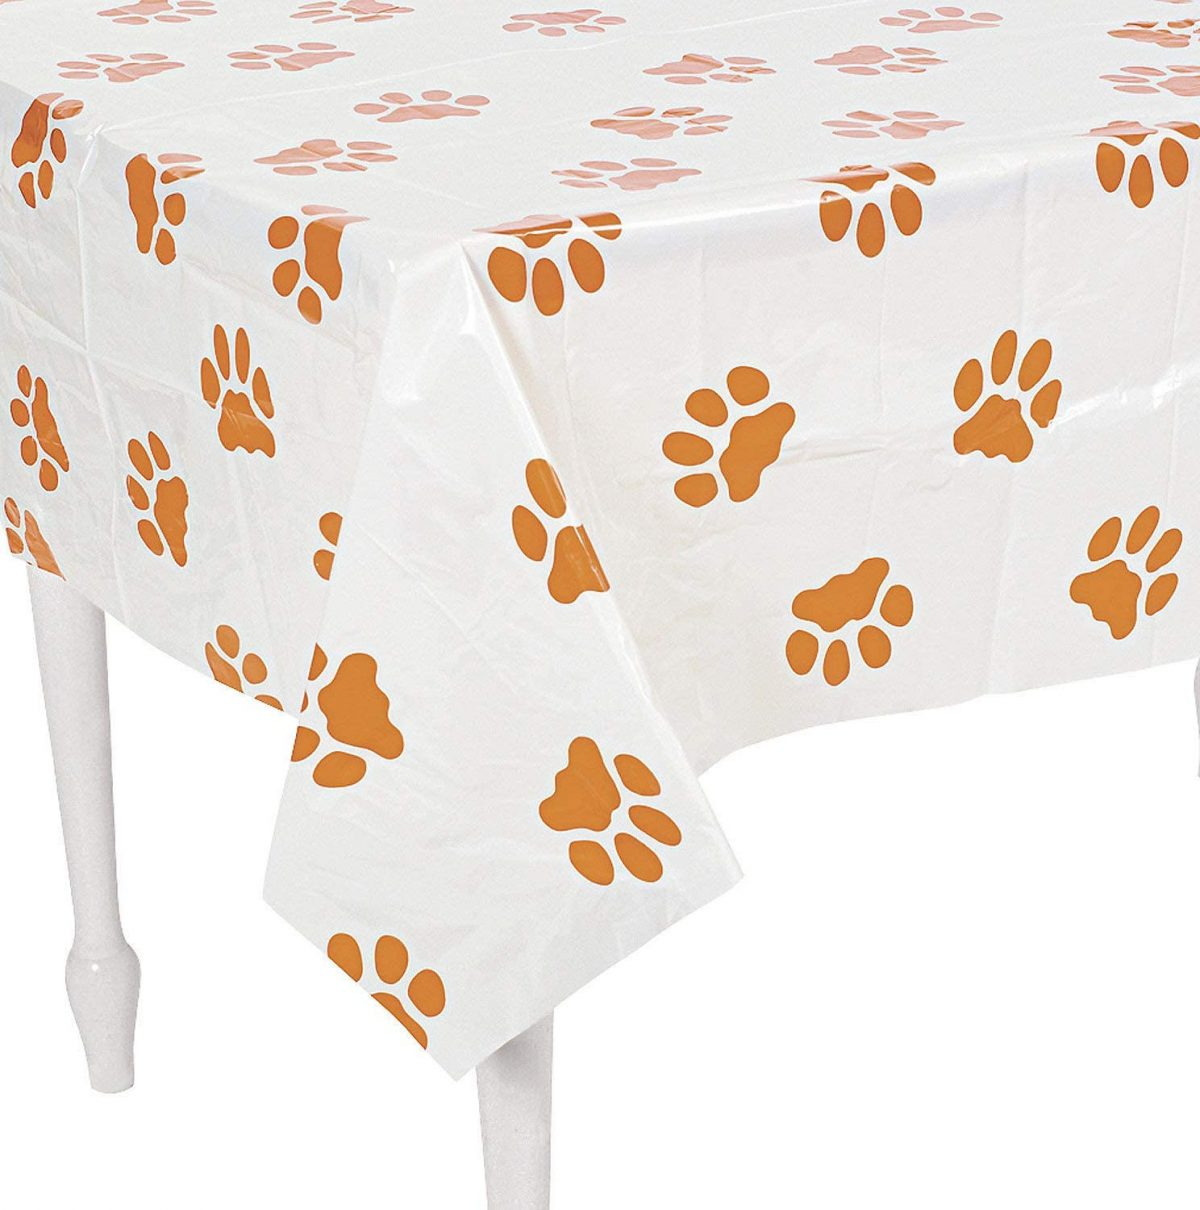 Five Dog Themed Tablecloths Design To Lighten Up Your Dining Area | Table Covers Depot